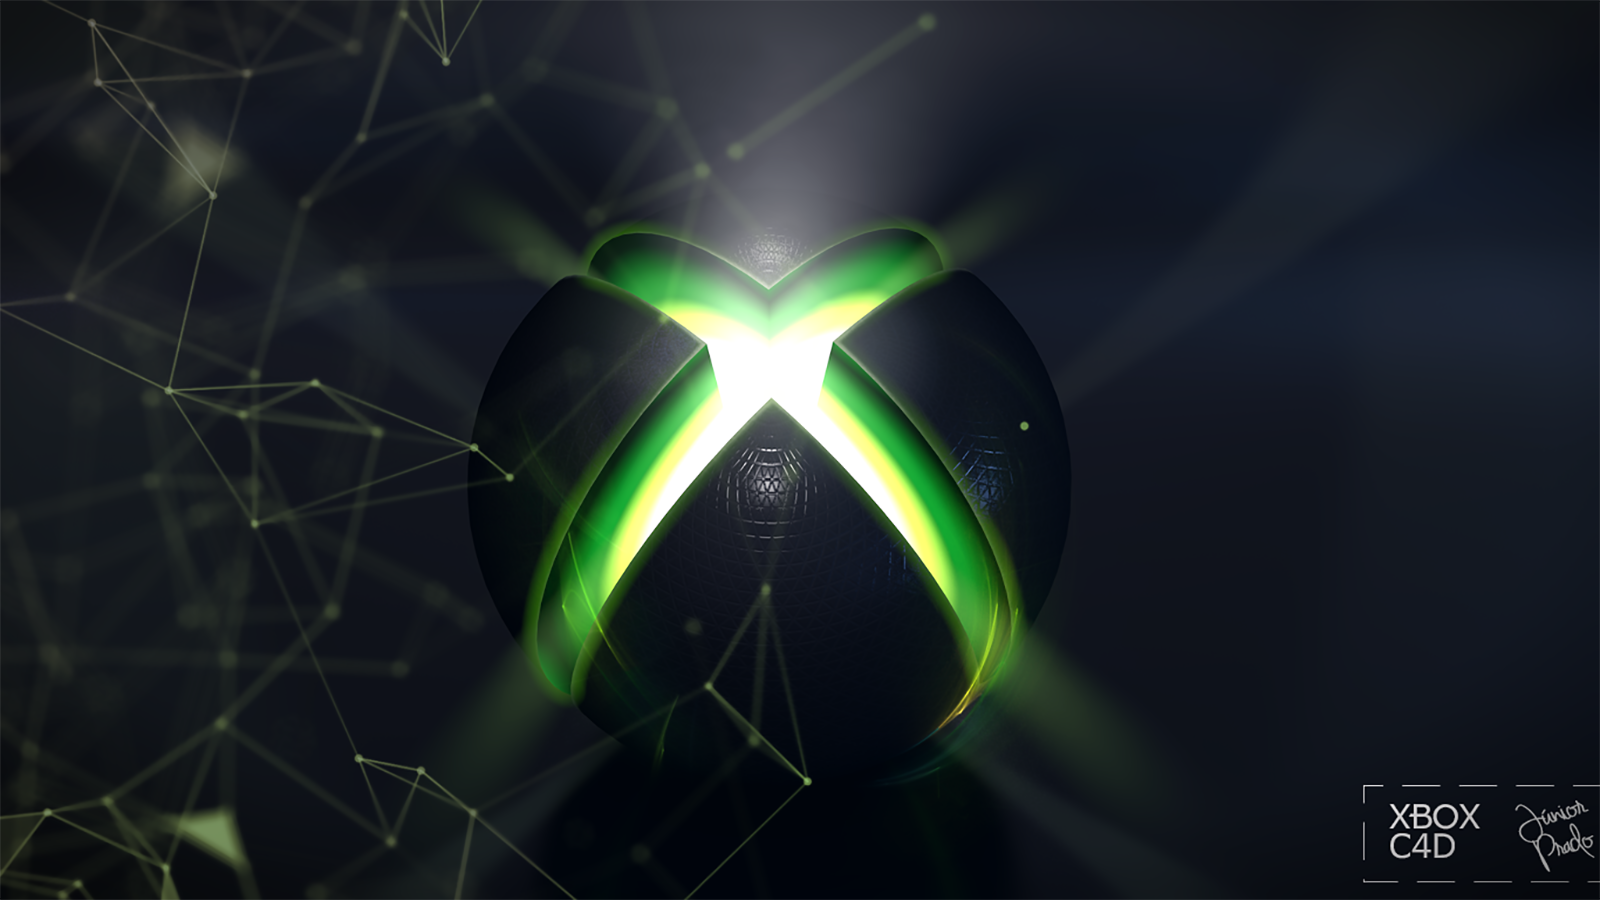 Xbox One Wallpapers: XBOX ONE 3D CINEMA 4D WALLPAPER GAMES 2017 Wallpaper And